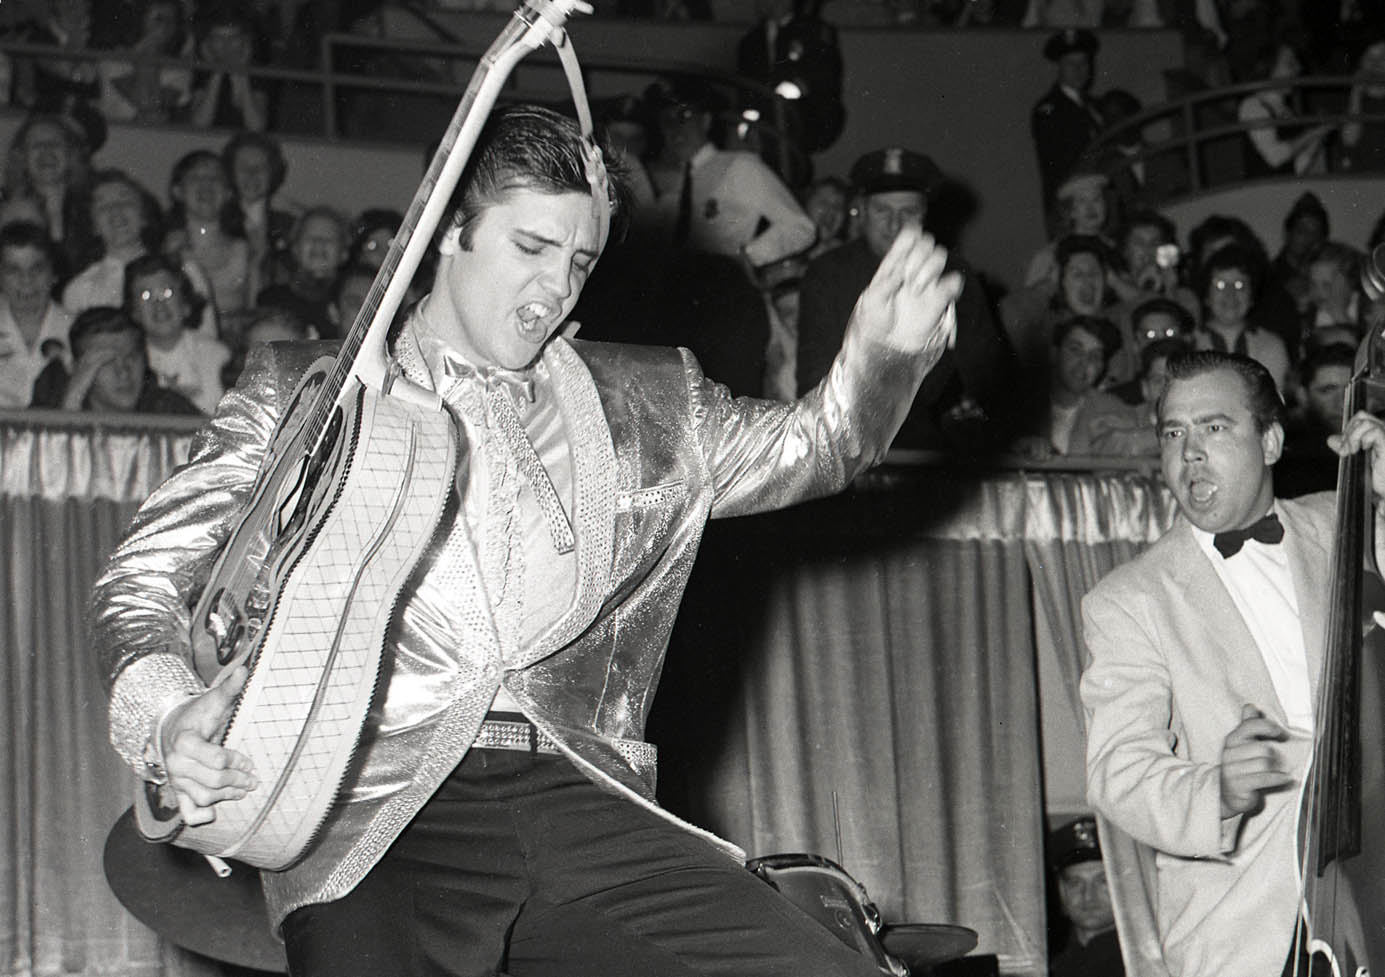 Robert L. Smith, a photographer for the Buffalo Evening News, captured this famous photo of Elvis Presley performing on April 1, 1957, in Buffalo's Memorial Auditorium.